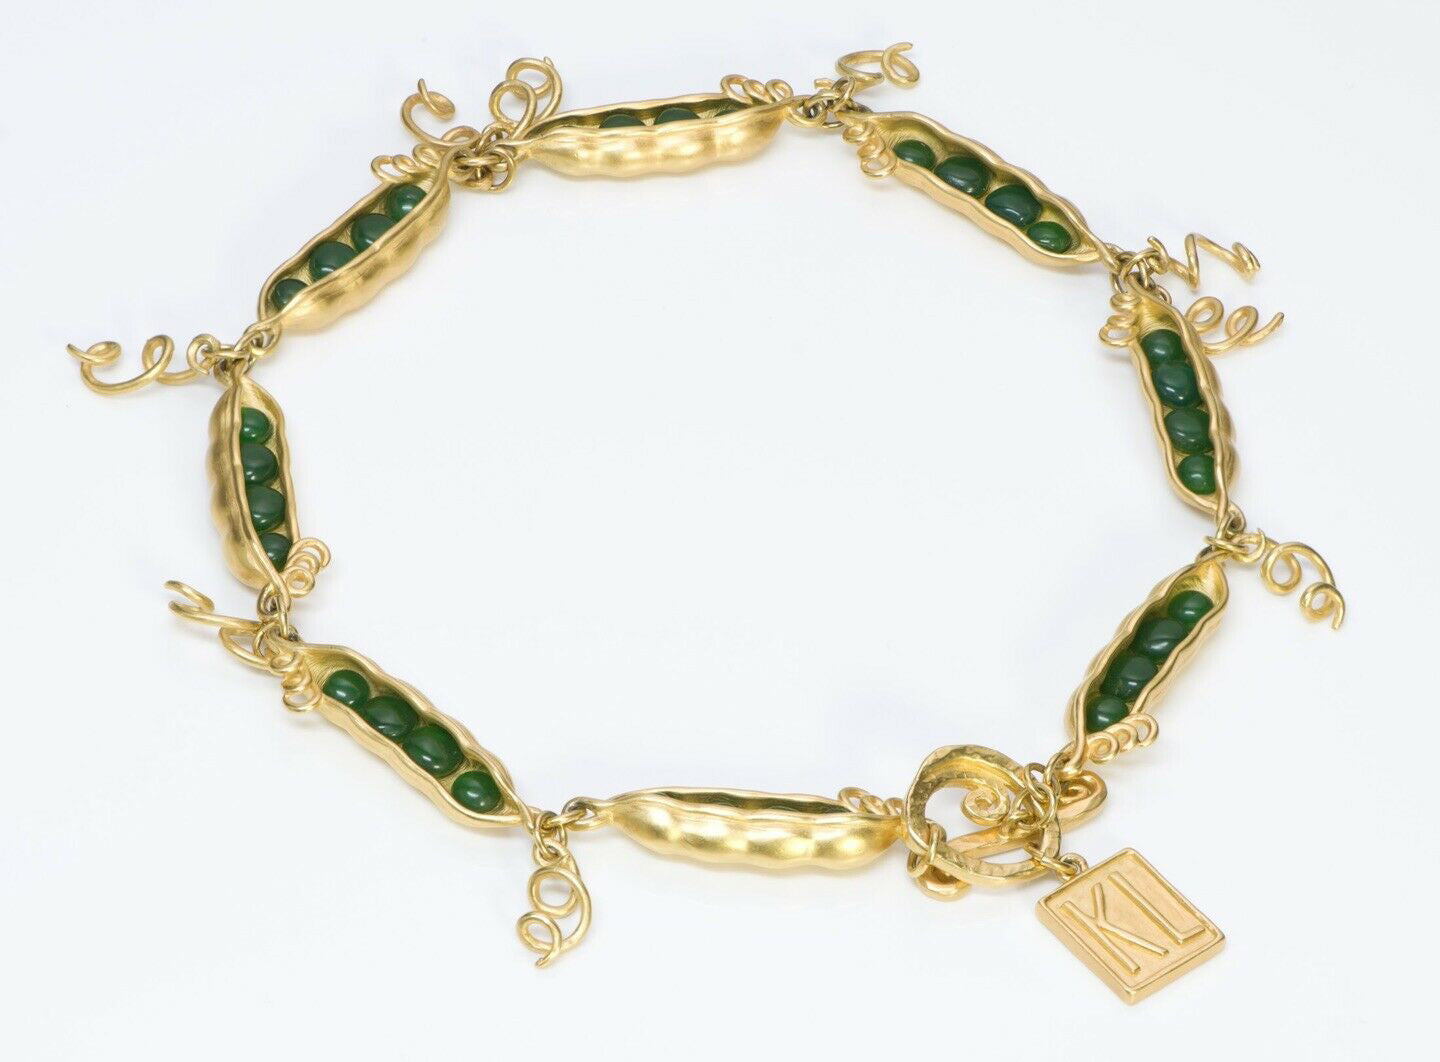 karl-lagerfeld-paris-peas-in-the-pod-green-glass-necklace